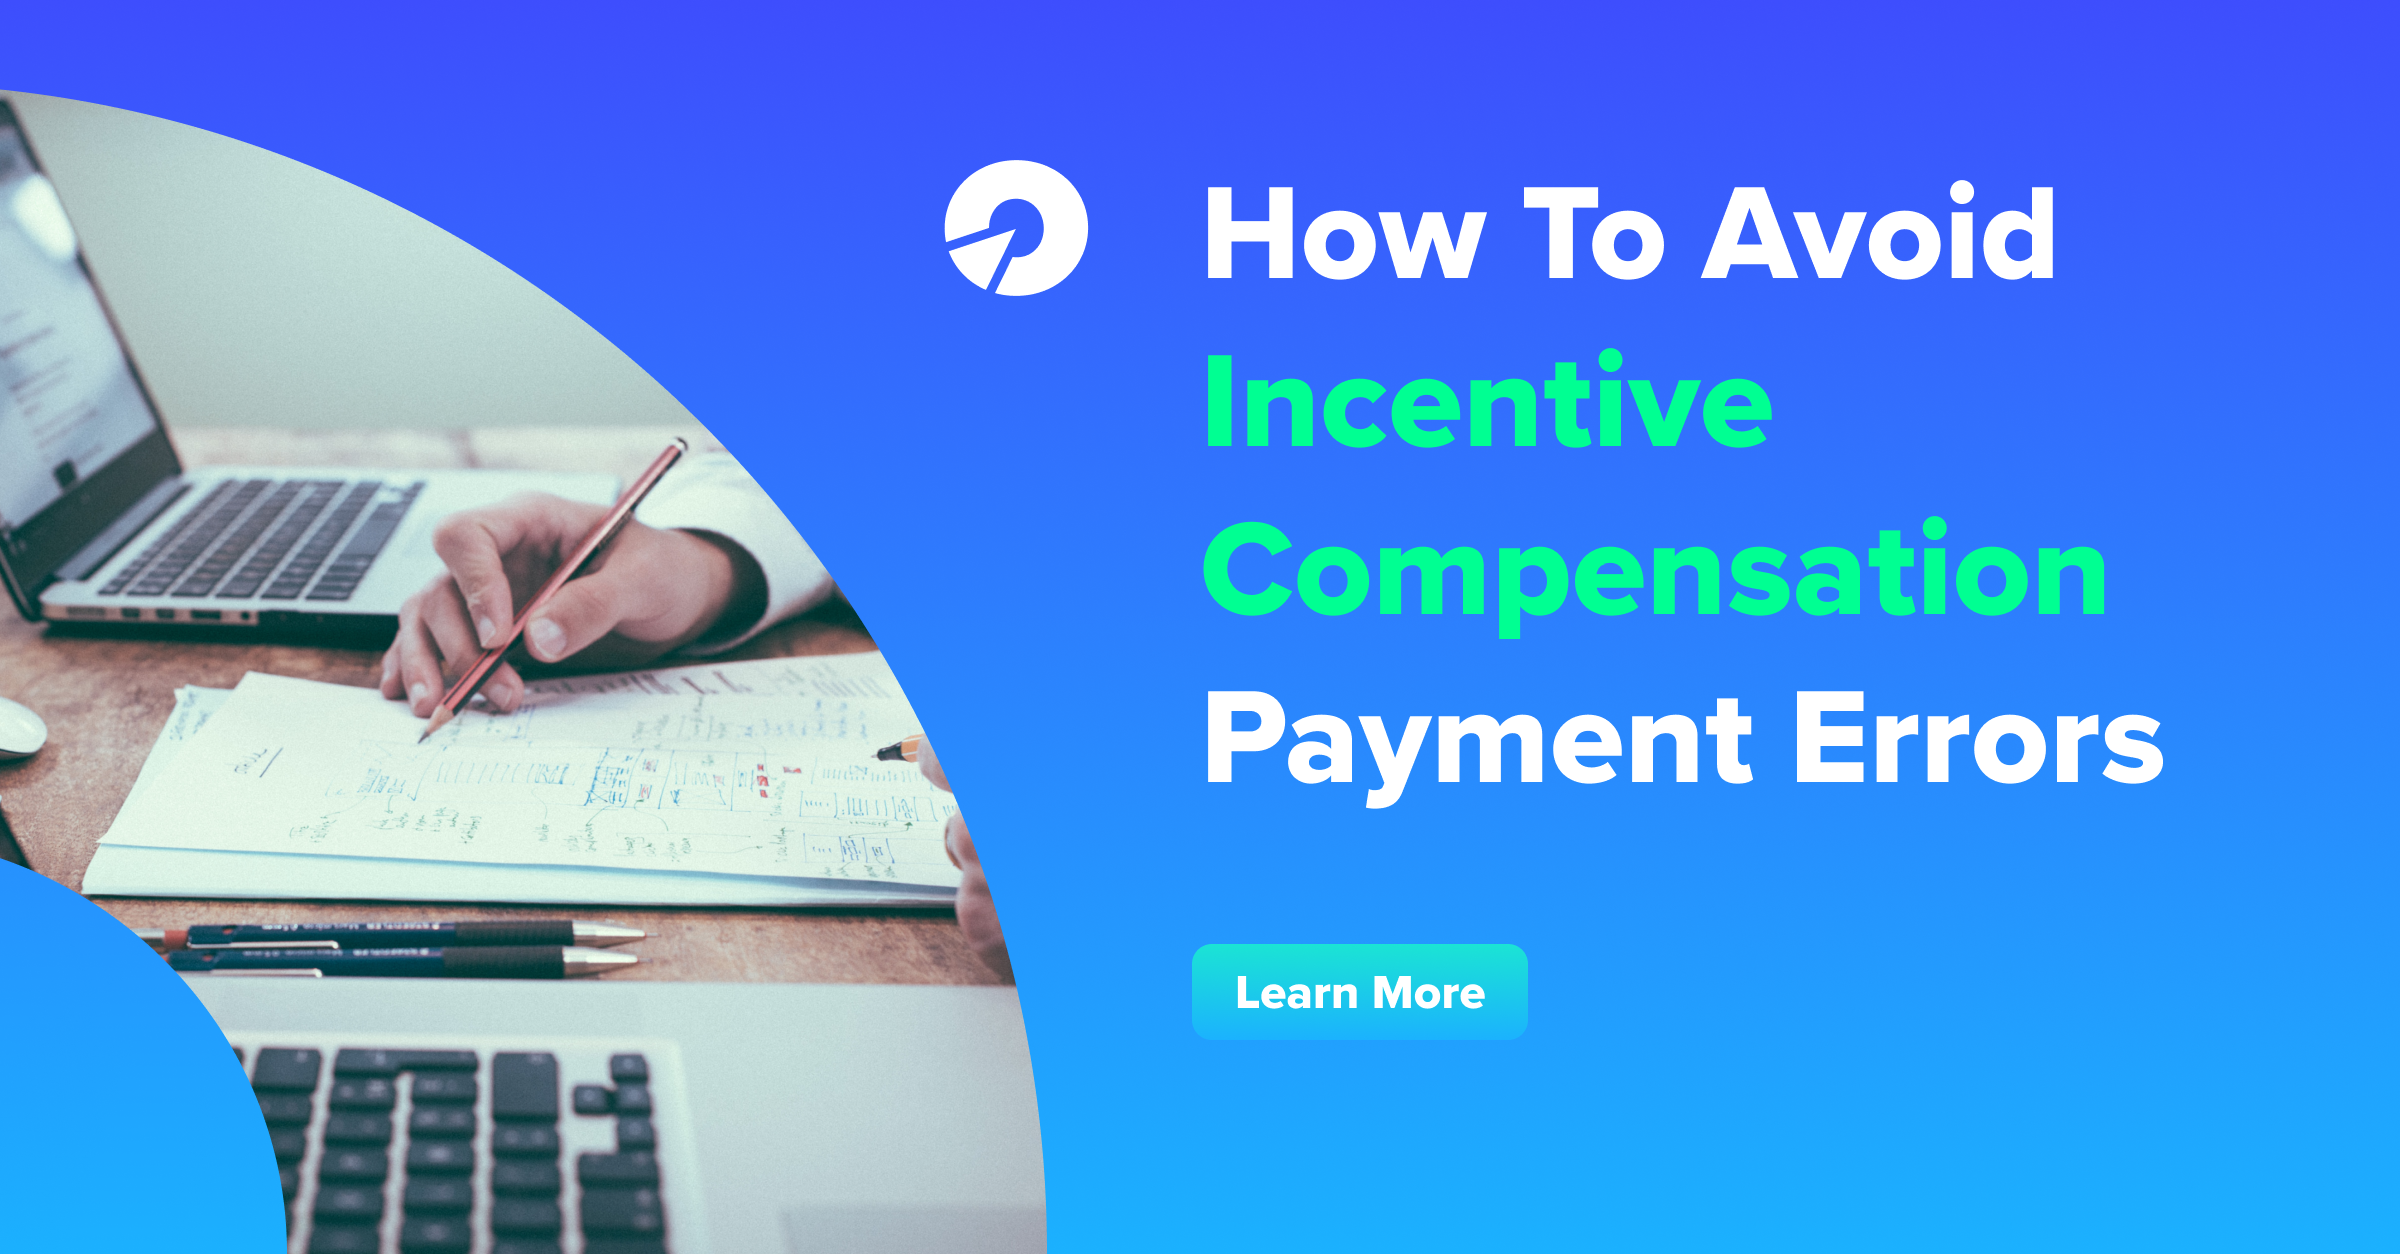 How To Avoid Incentive Compensation Payment Errors